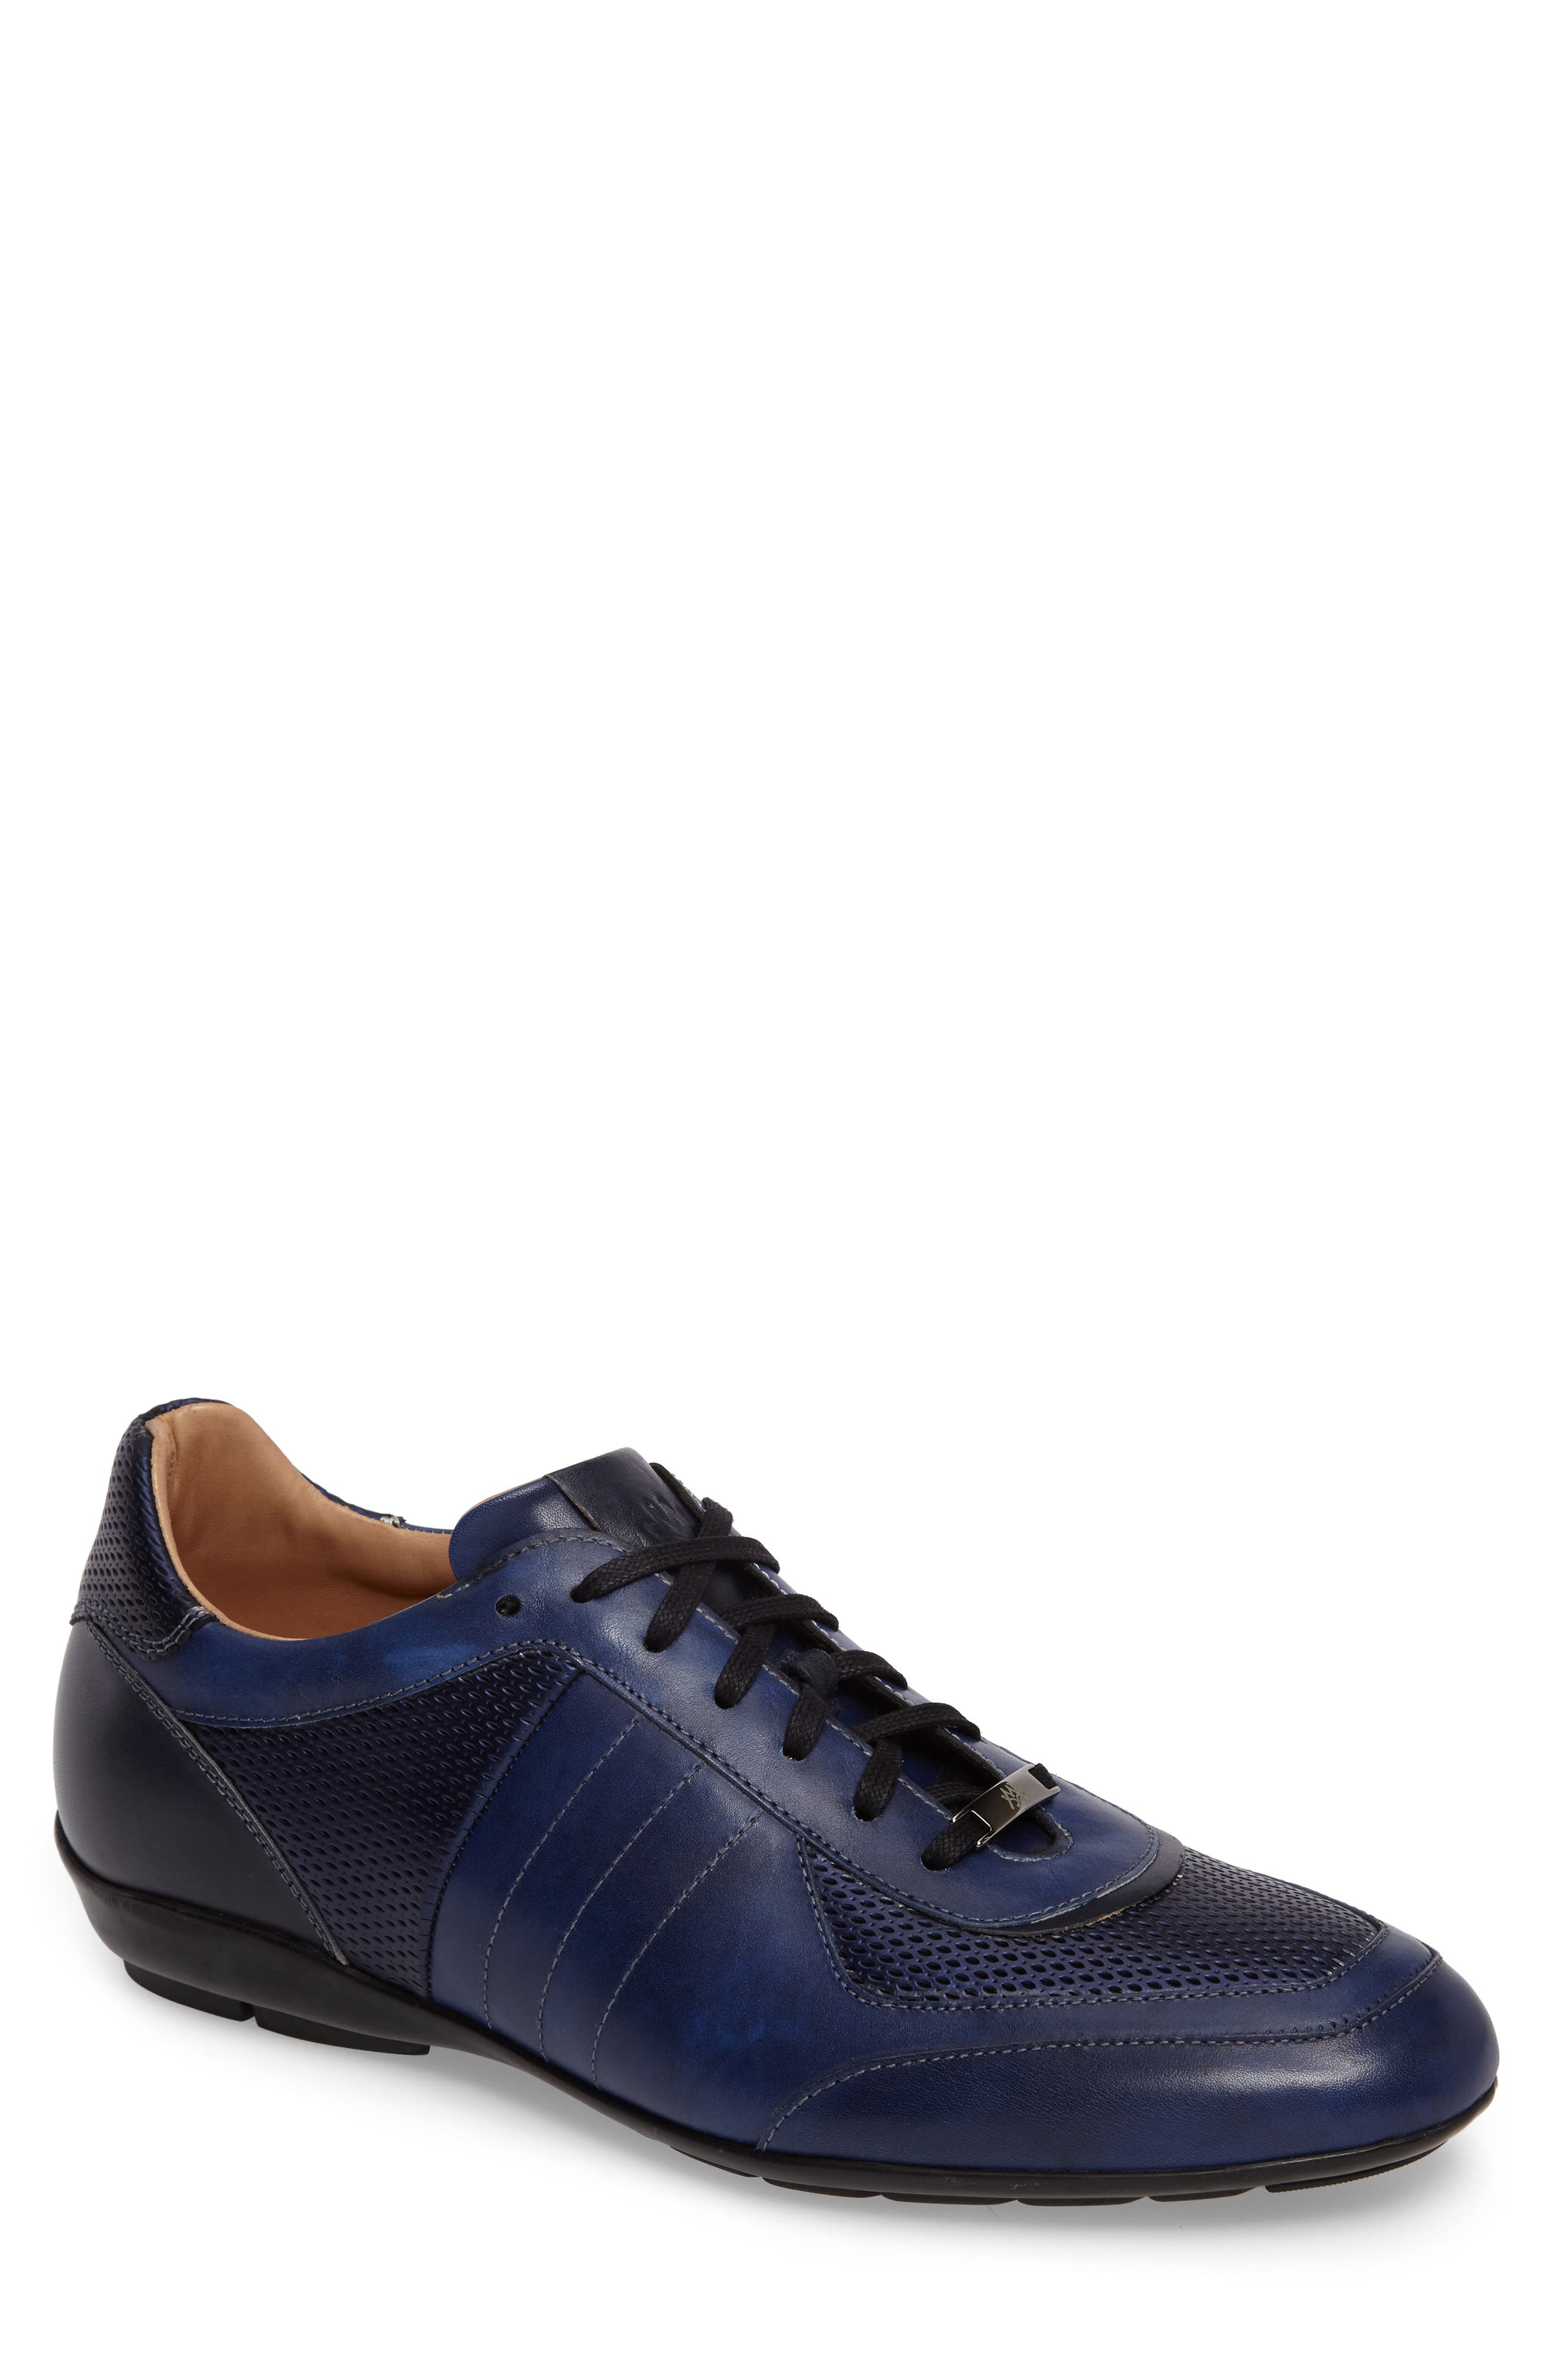 Redon Embossed Sneaker in Blue Leather